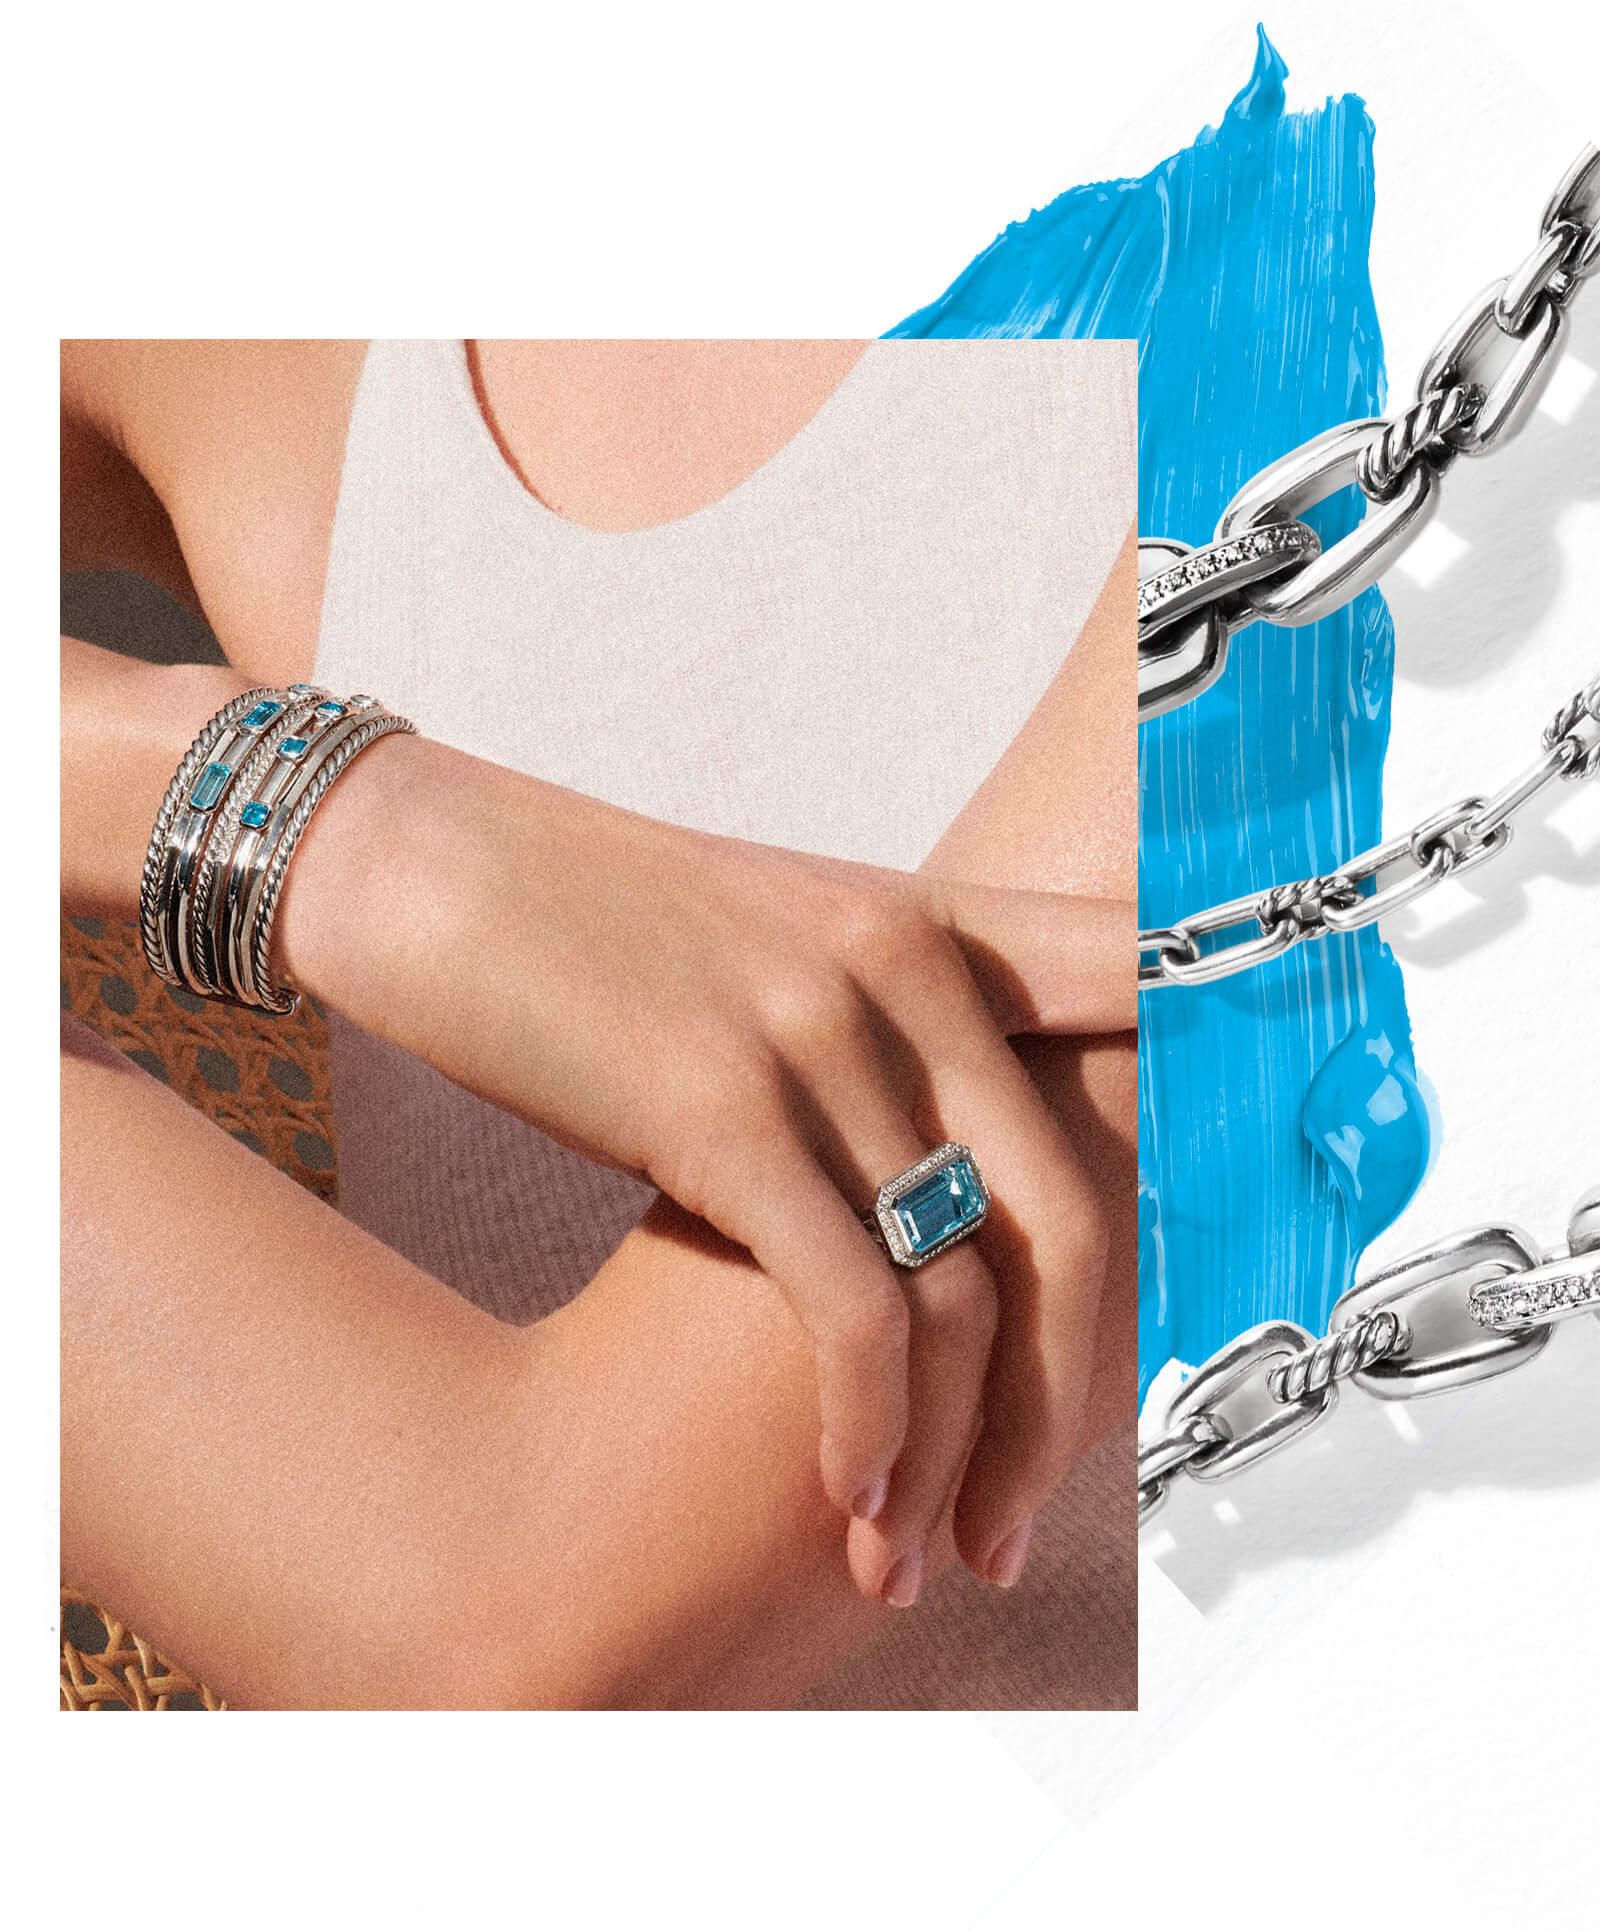 A color photo shows a close-up of a woman's right hand crossed over her left forearm in front of the white tank top she's wearing. The detail of a brown wicker chair she is sitting in is visible between her crossed arms. On her right arm she is wearing a David Yurman multi-row Stax bracelet and a David Yurman statement Novella ring. The jewelry is crafted from sterling silver with blue topaz and pavé white diamonds. Coming out from under the right side of the photo are three sections of a David Yurman Wellesley Link necklace casting long shadows. The jewelry is crafted from sterling silver with pavé white diamonds. Under the upper-right corner of photo and beneath the parts of the Wellesley Link necklace is a heavy streak of cerulean-blue paint.